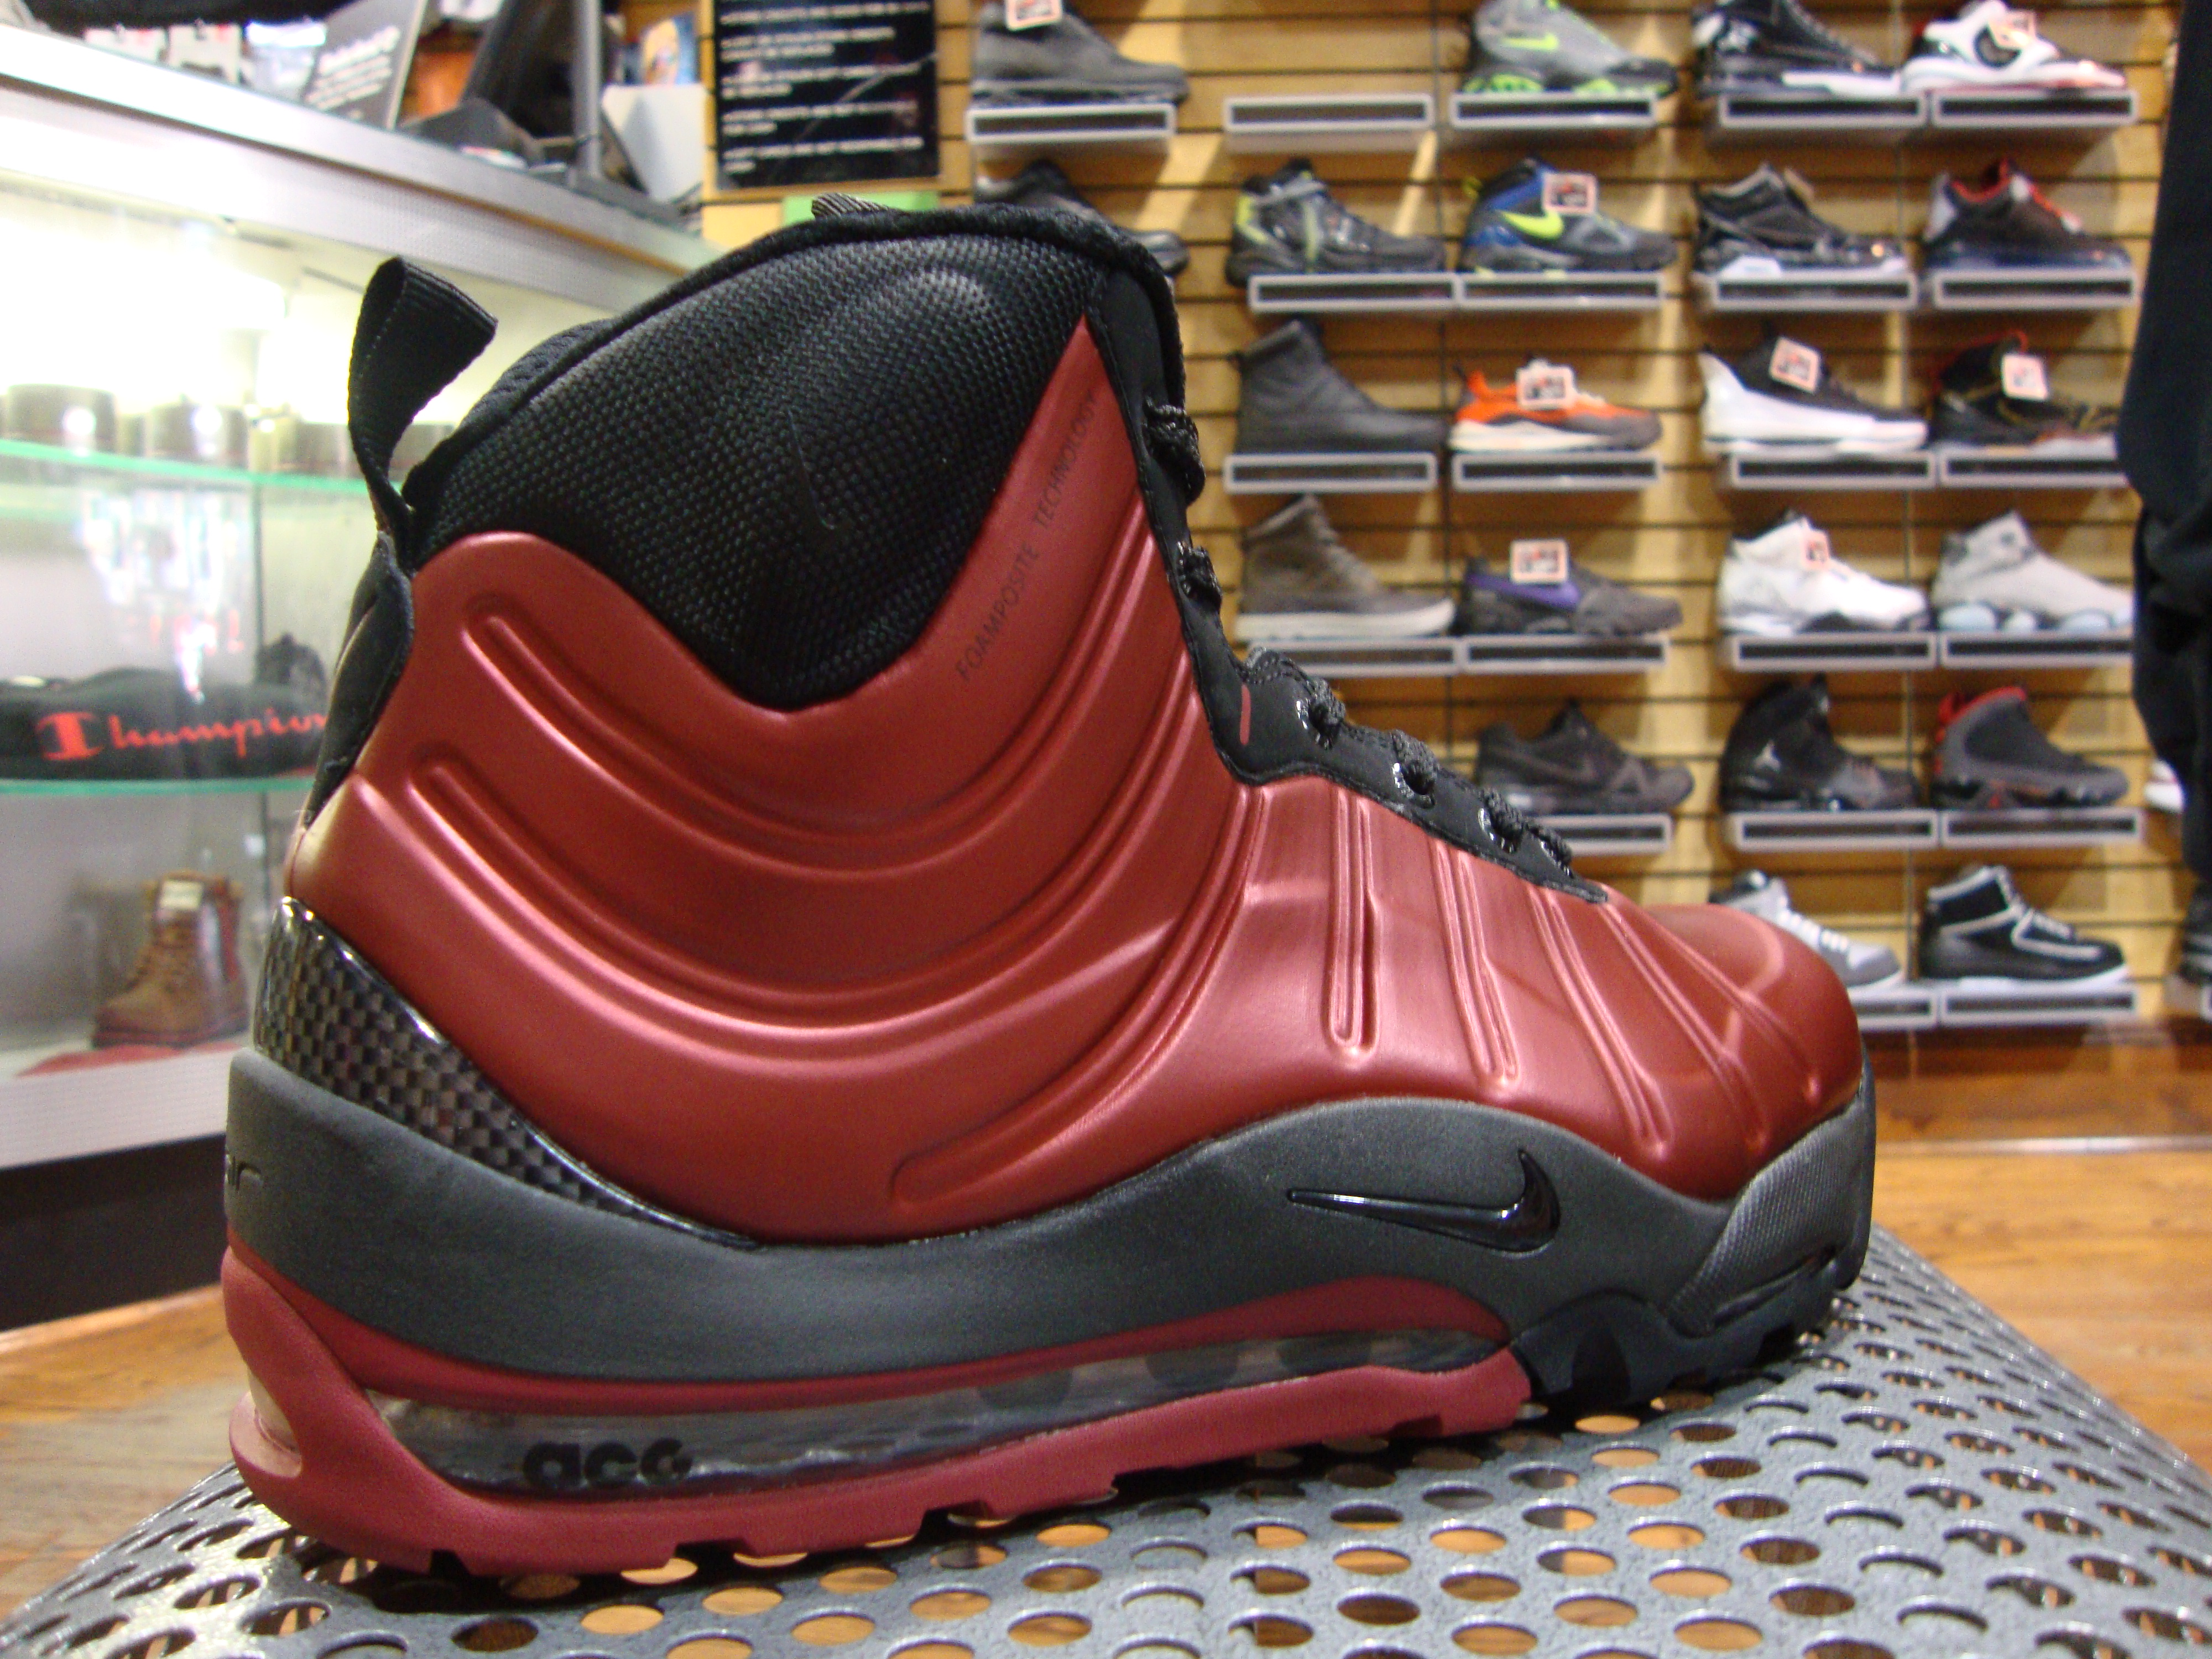 new product 99d3b 97240 Nike Air Max Posite Bacon Boot. Advertisements